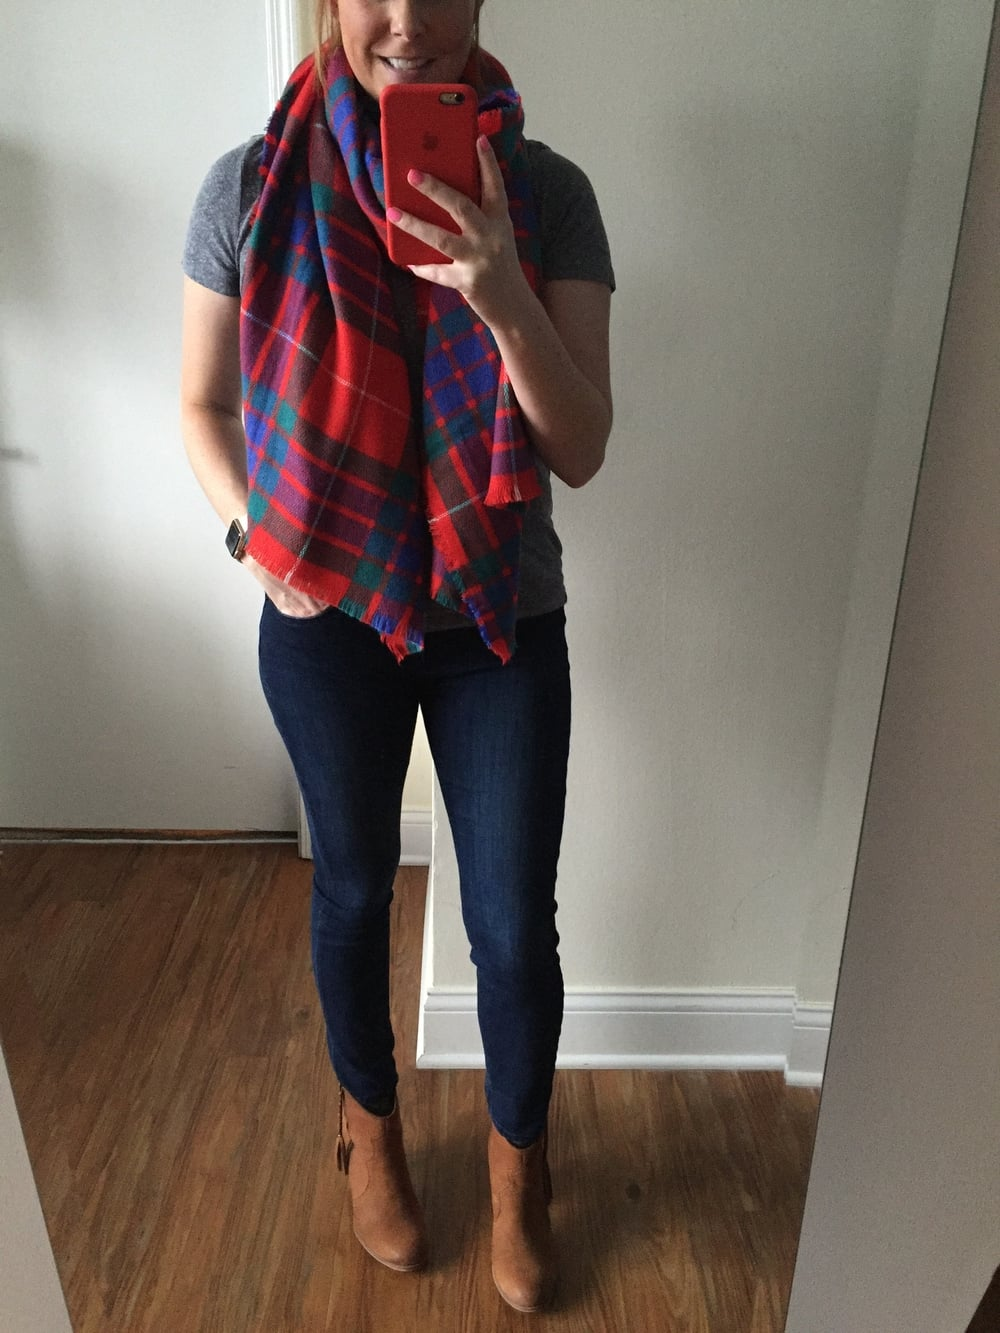 Scarf: Old Navy,  Brushed Flannel Scarf ,  Jeans: Express,  Solid Dark Mid Rise Jean Legging , Booties: Aldo, Watch: Apple,  38mm Gold Aluminum Case  (with Antique White Sport Band)